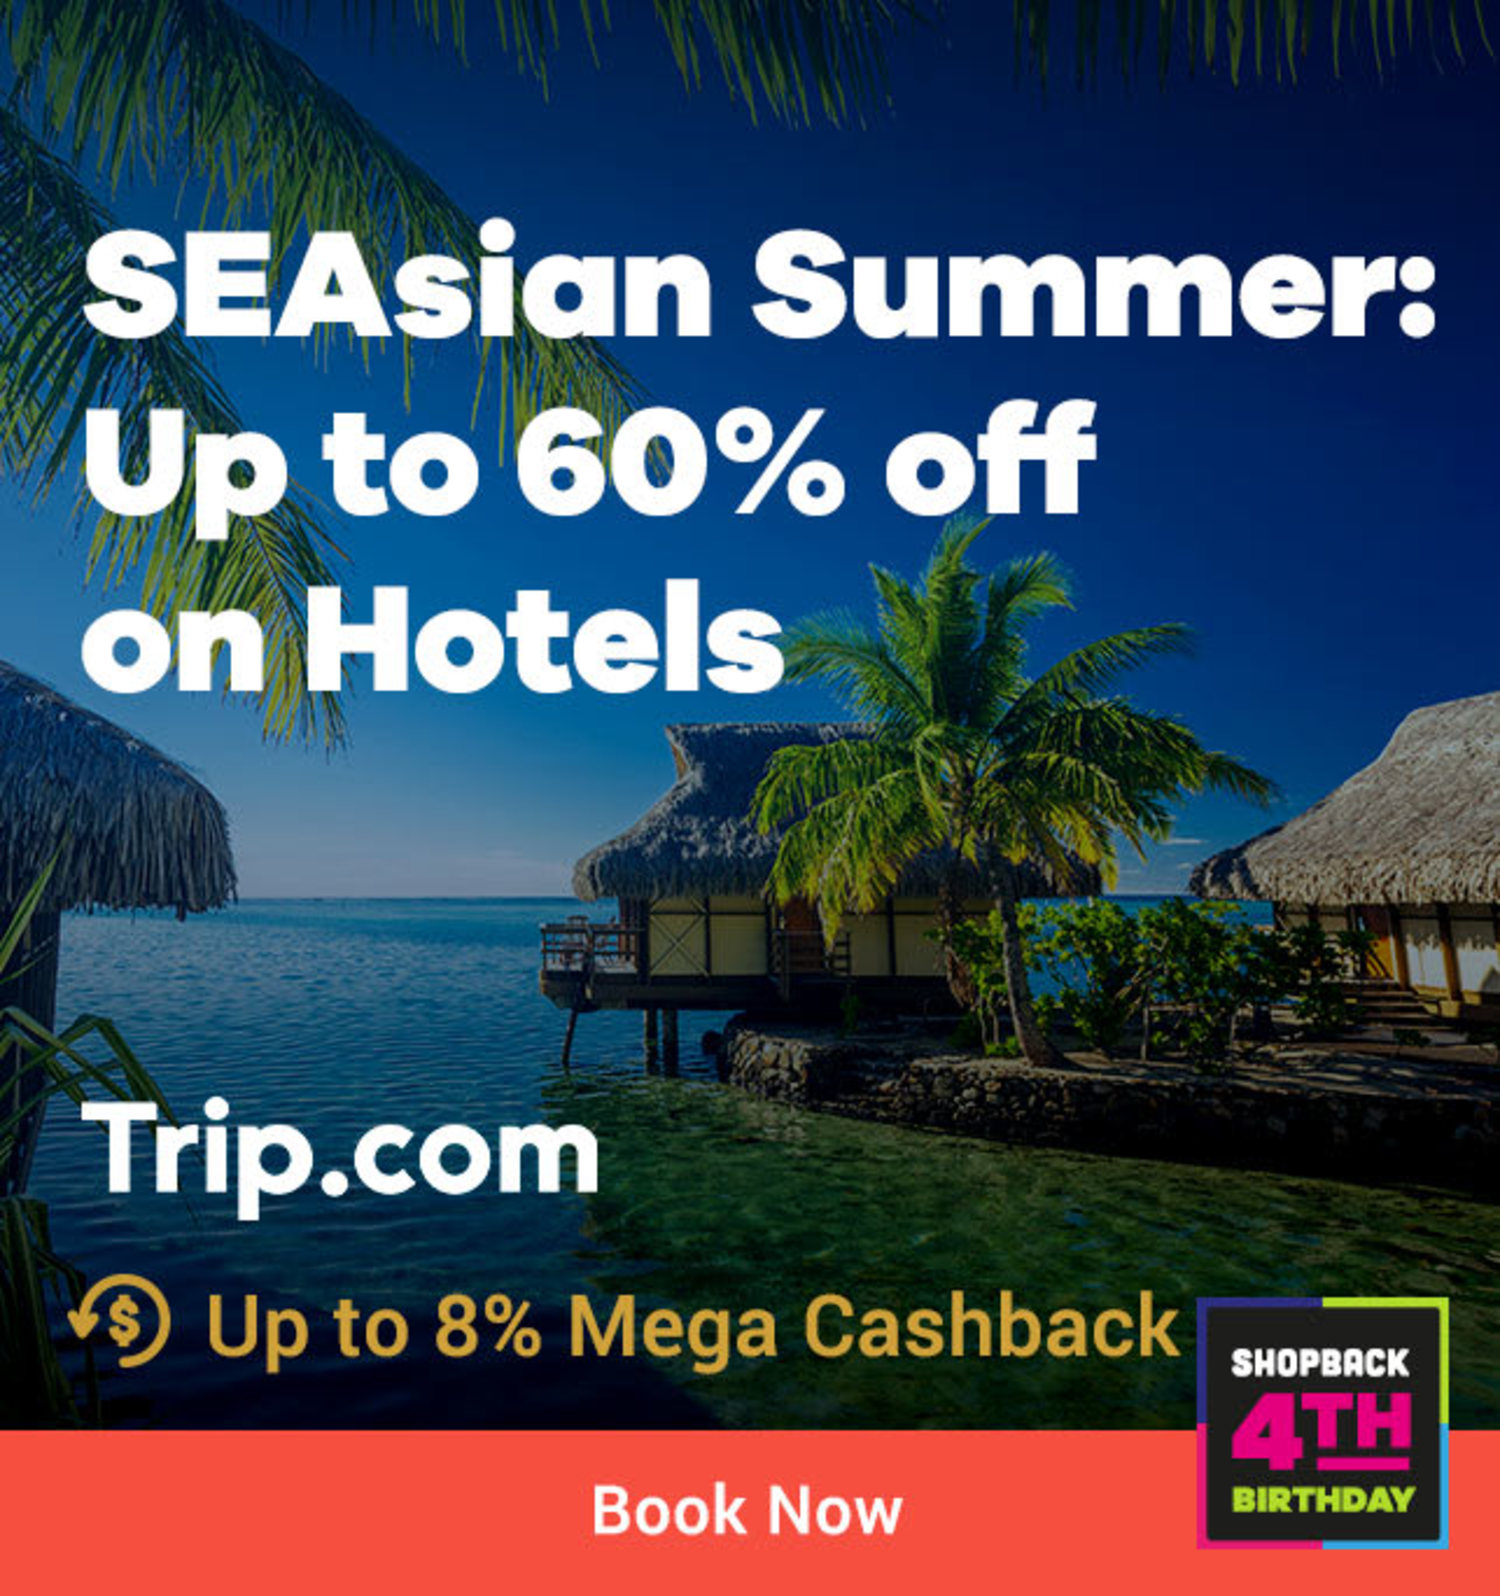 Trip.com Southeast Asian Summer: Up to 60% off on Hotels Up to 8% Mega Cashback (was <6%)